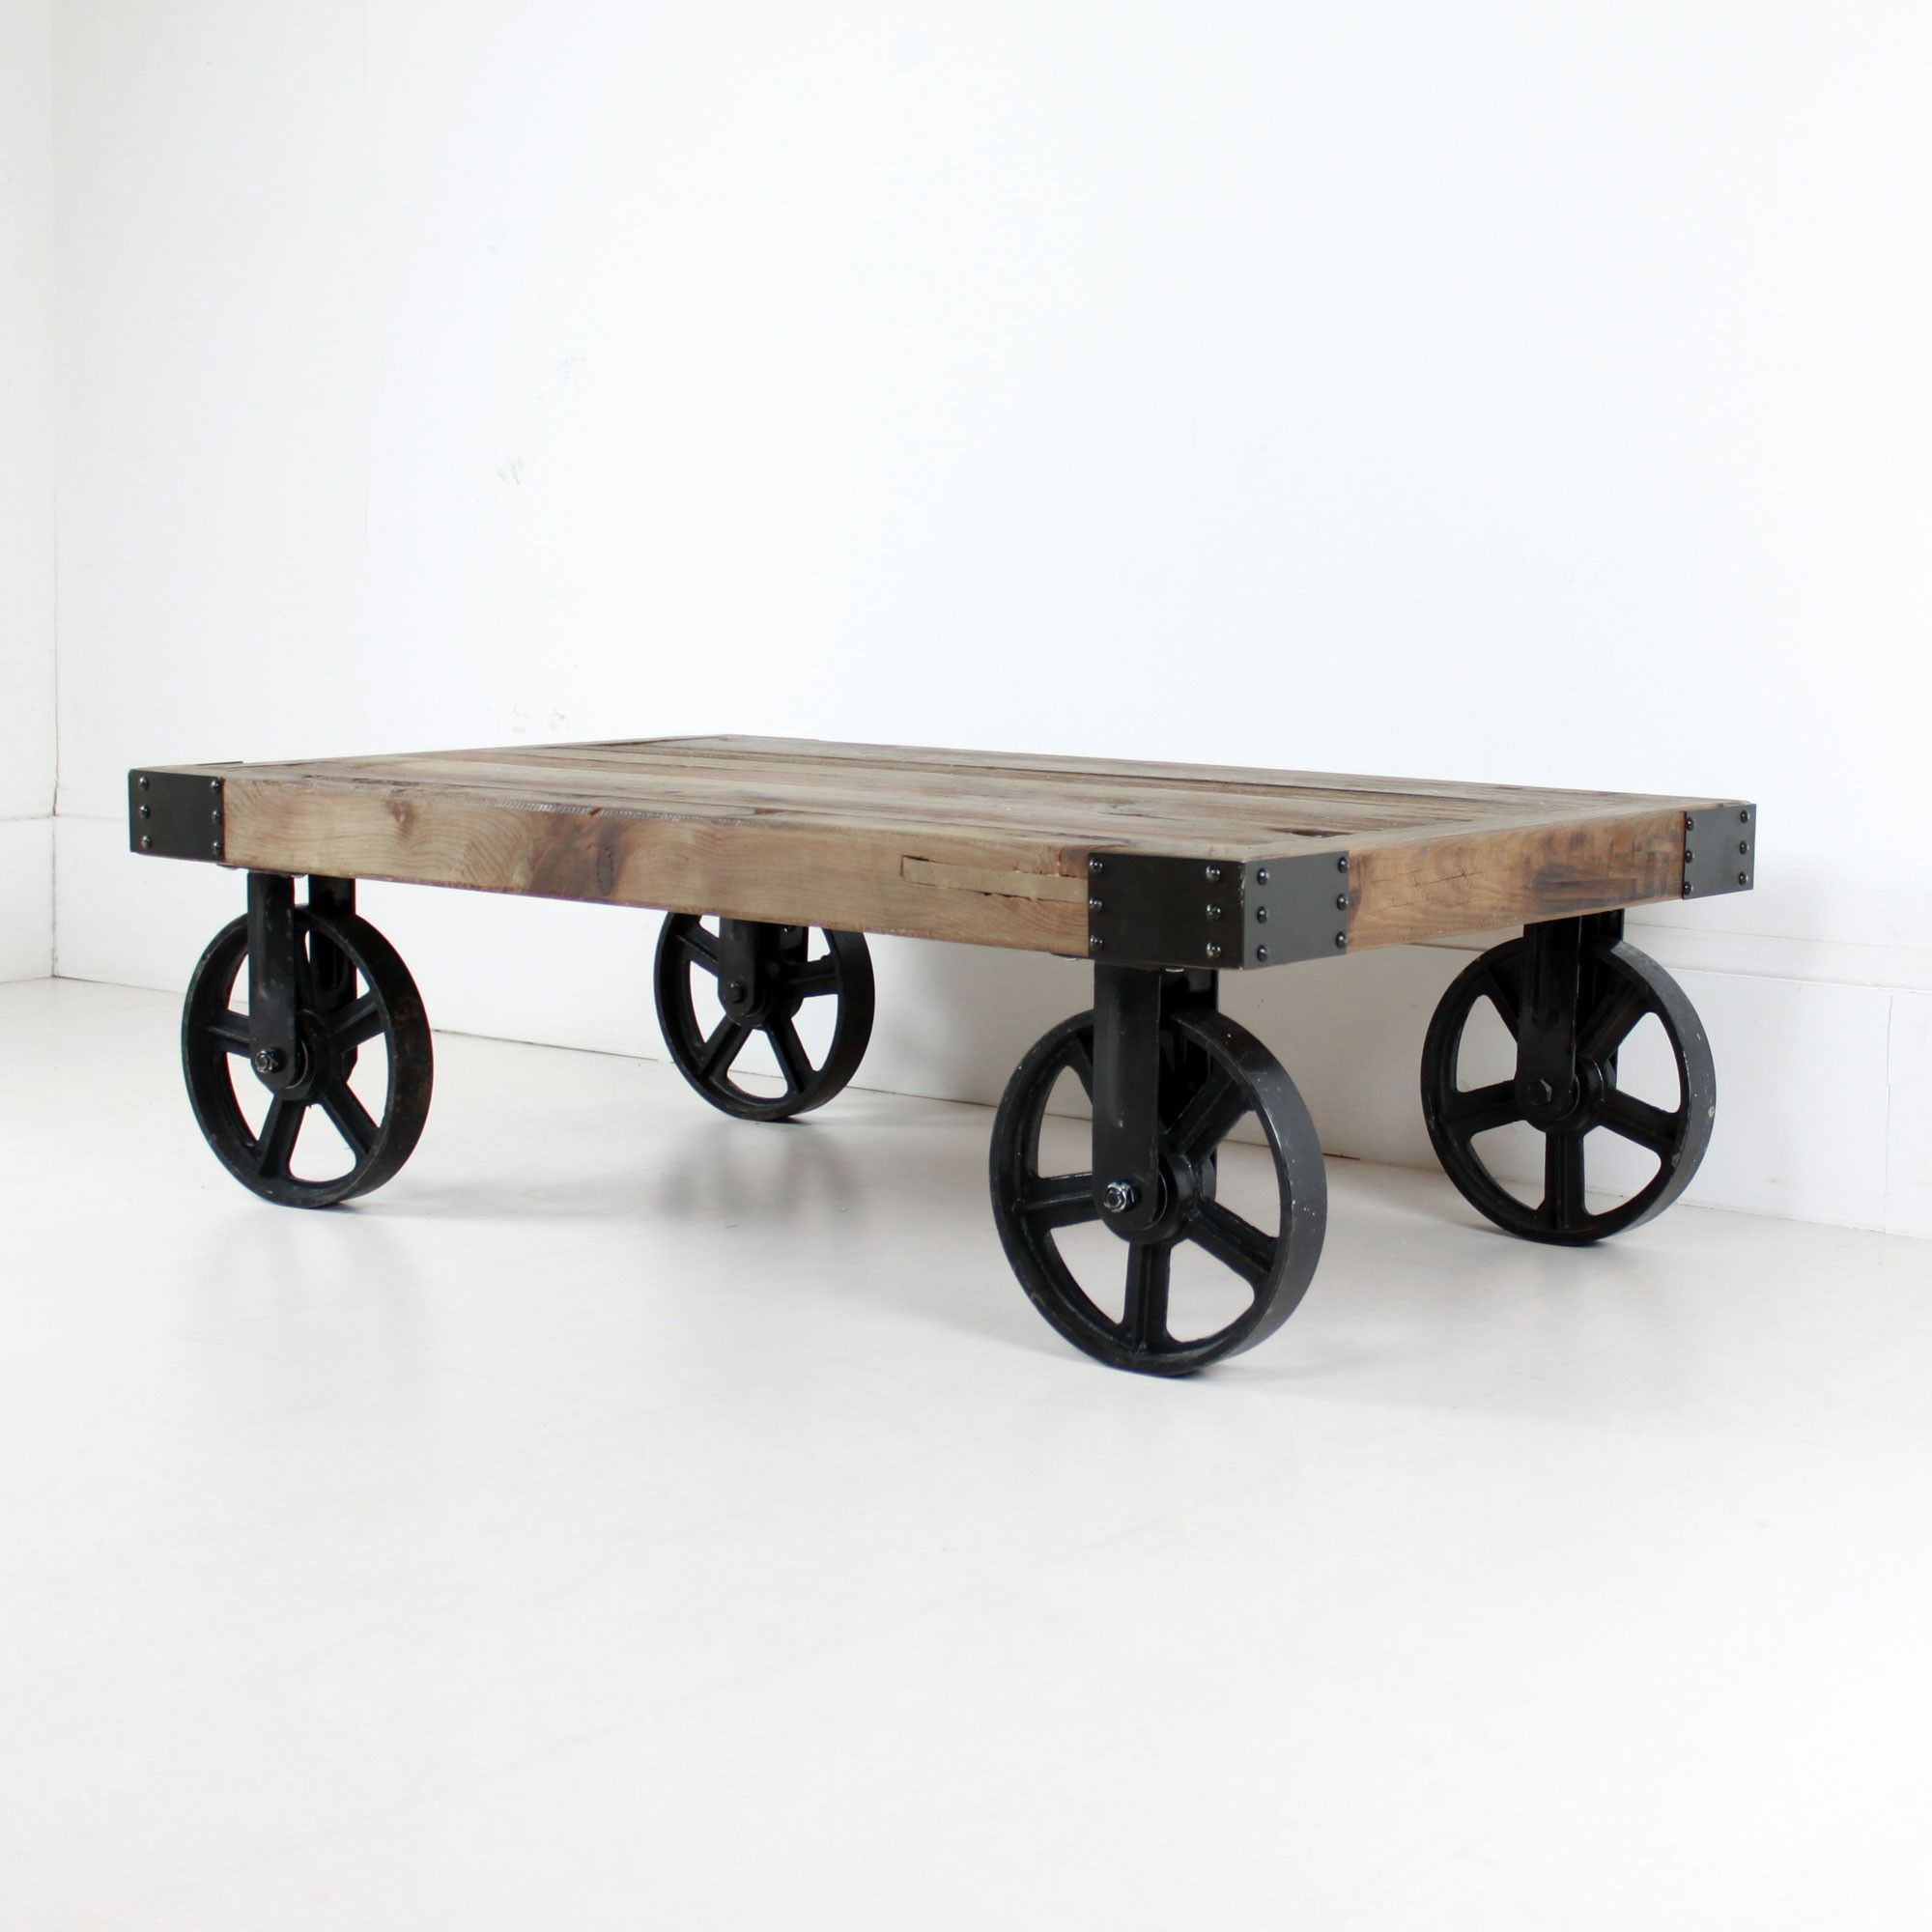 Industrial Coffee Table on Wheels heimilihugmyndir Pinterest